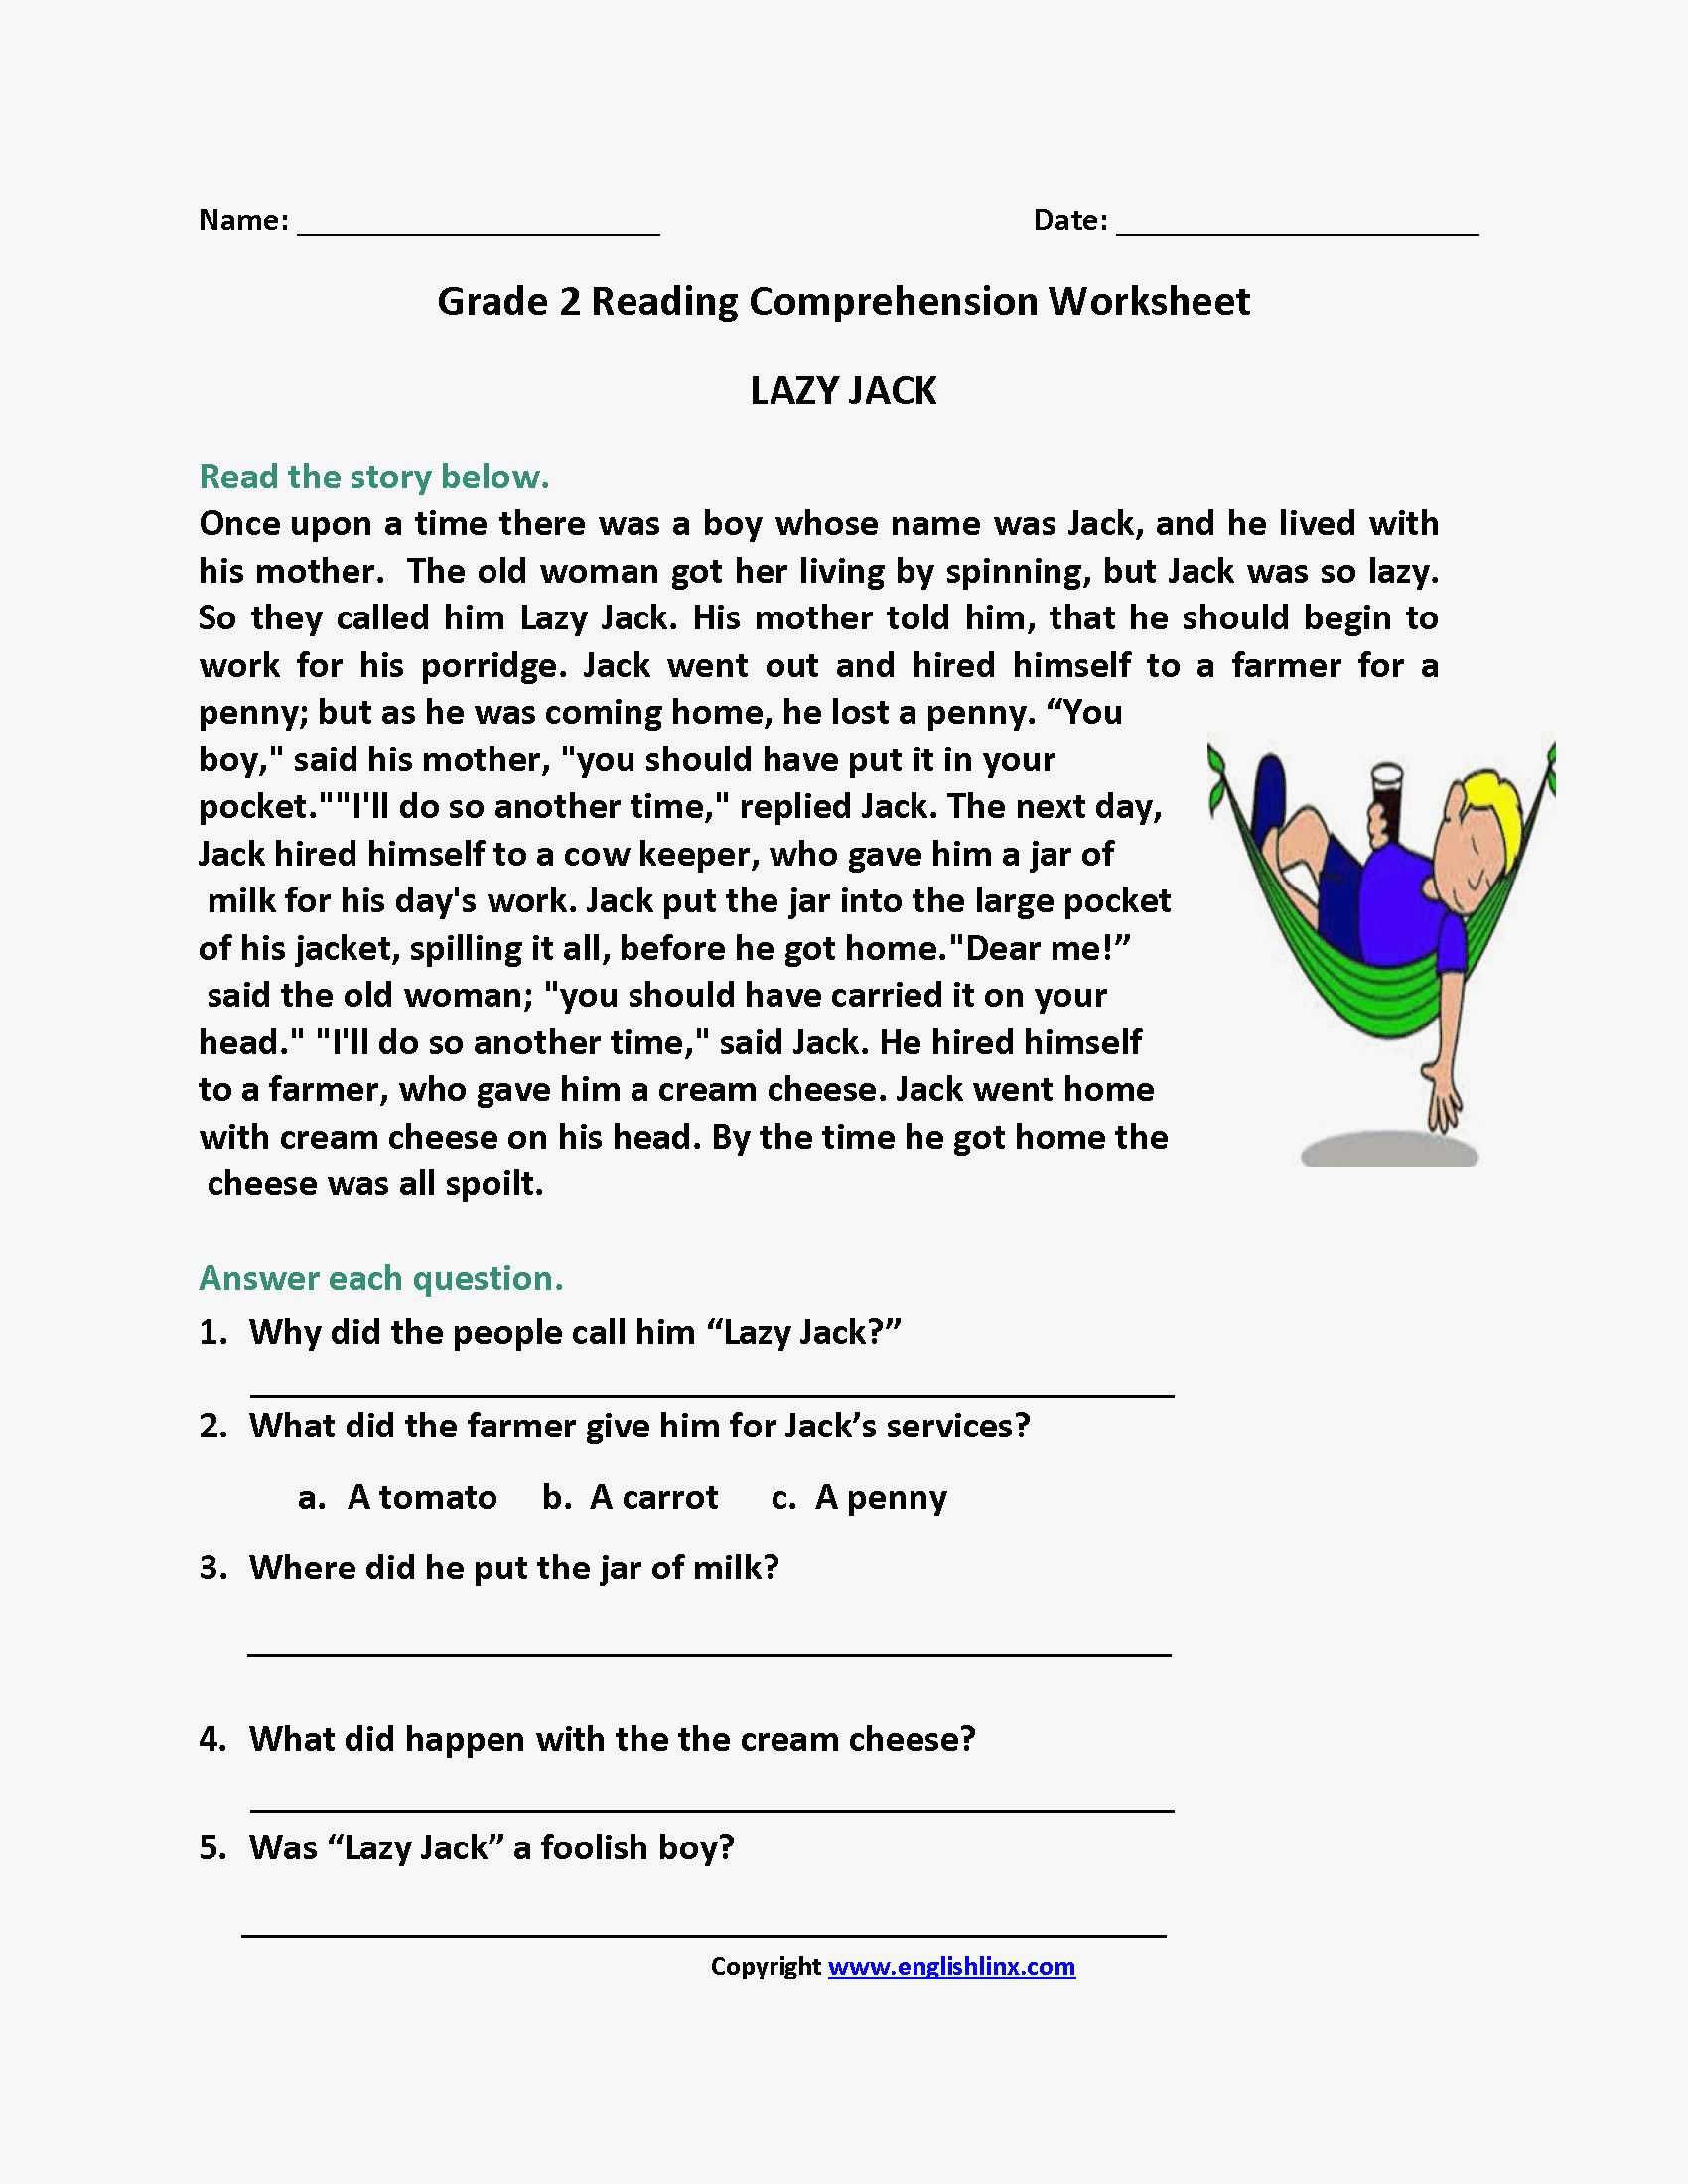 hight resolution of 10 Reading Comprehension Worksheets for 2nd Grade - Free Templates